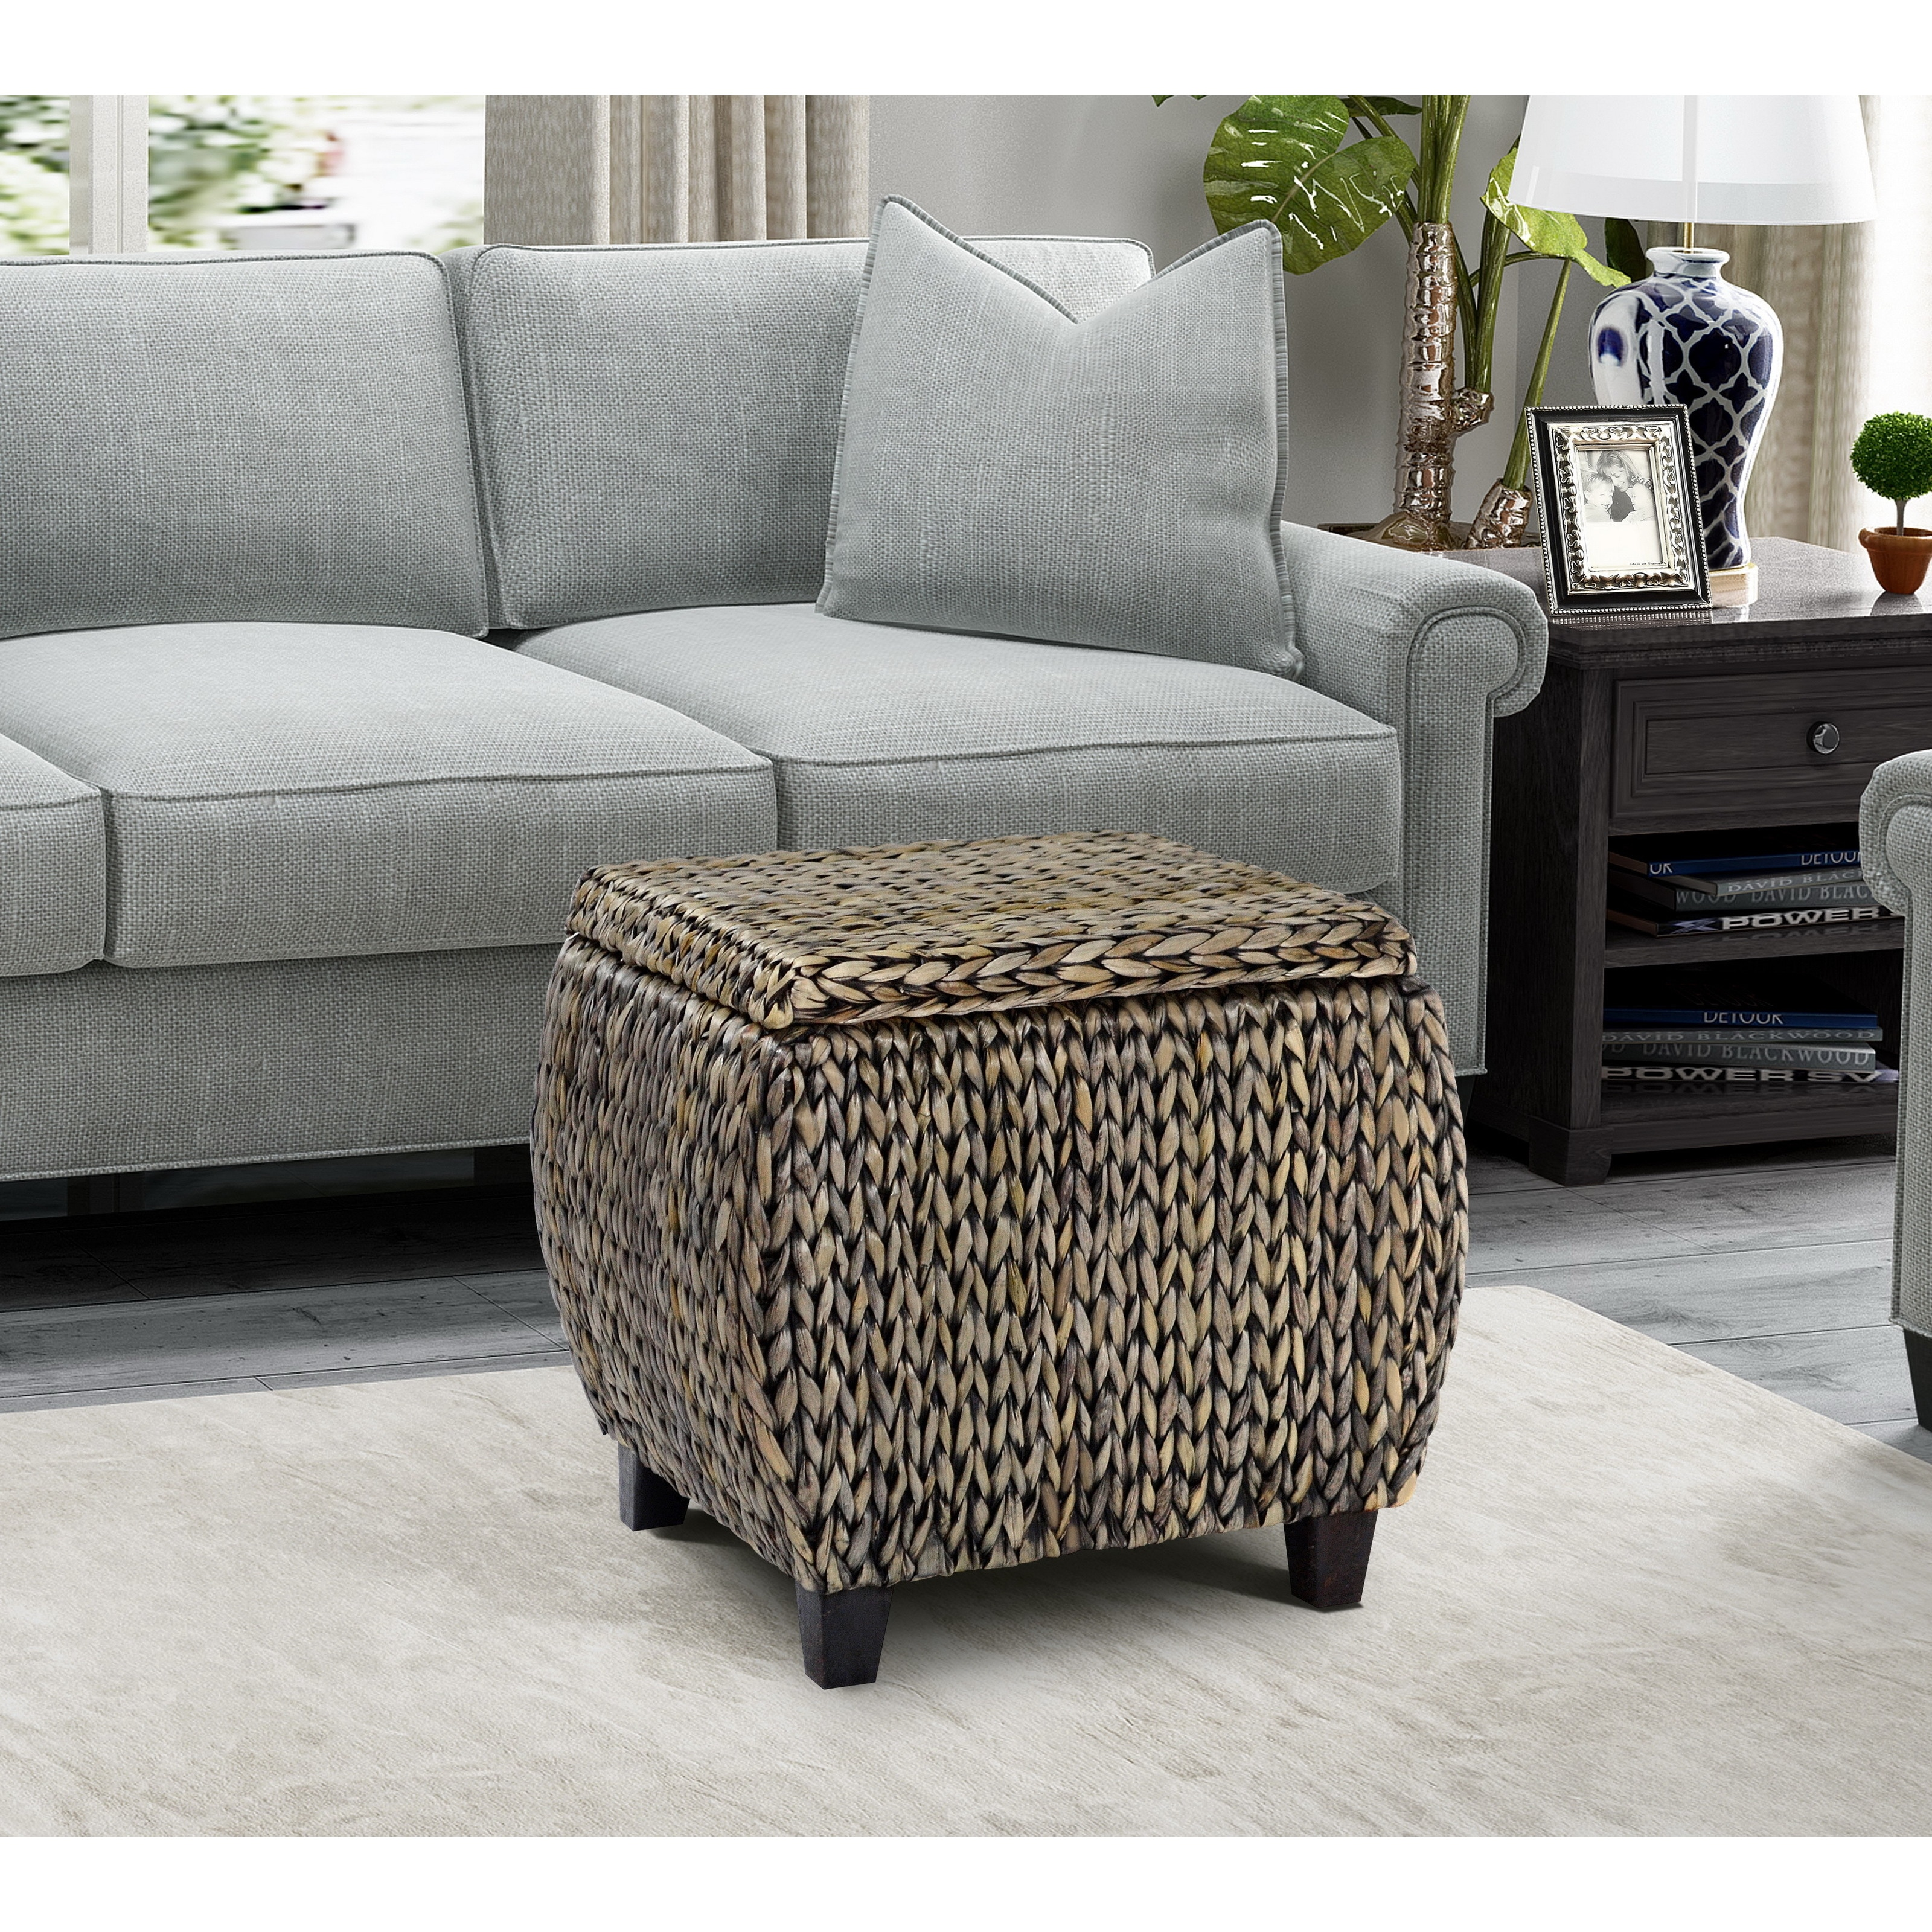 set ottomans cognac garden ottoman overstock shipping product tribeca and chair home today abbyson chairs free